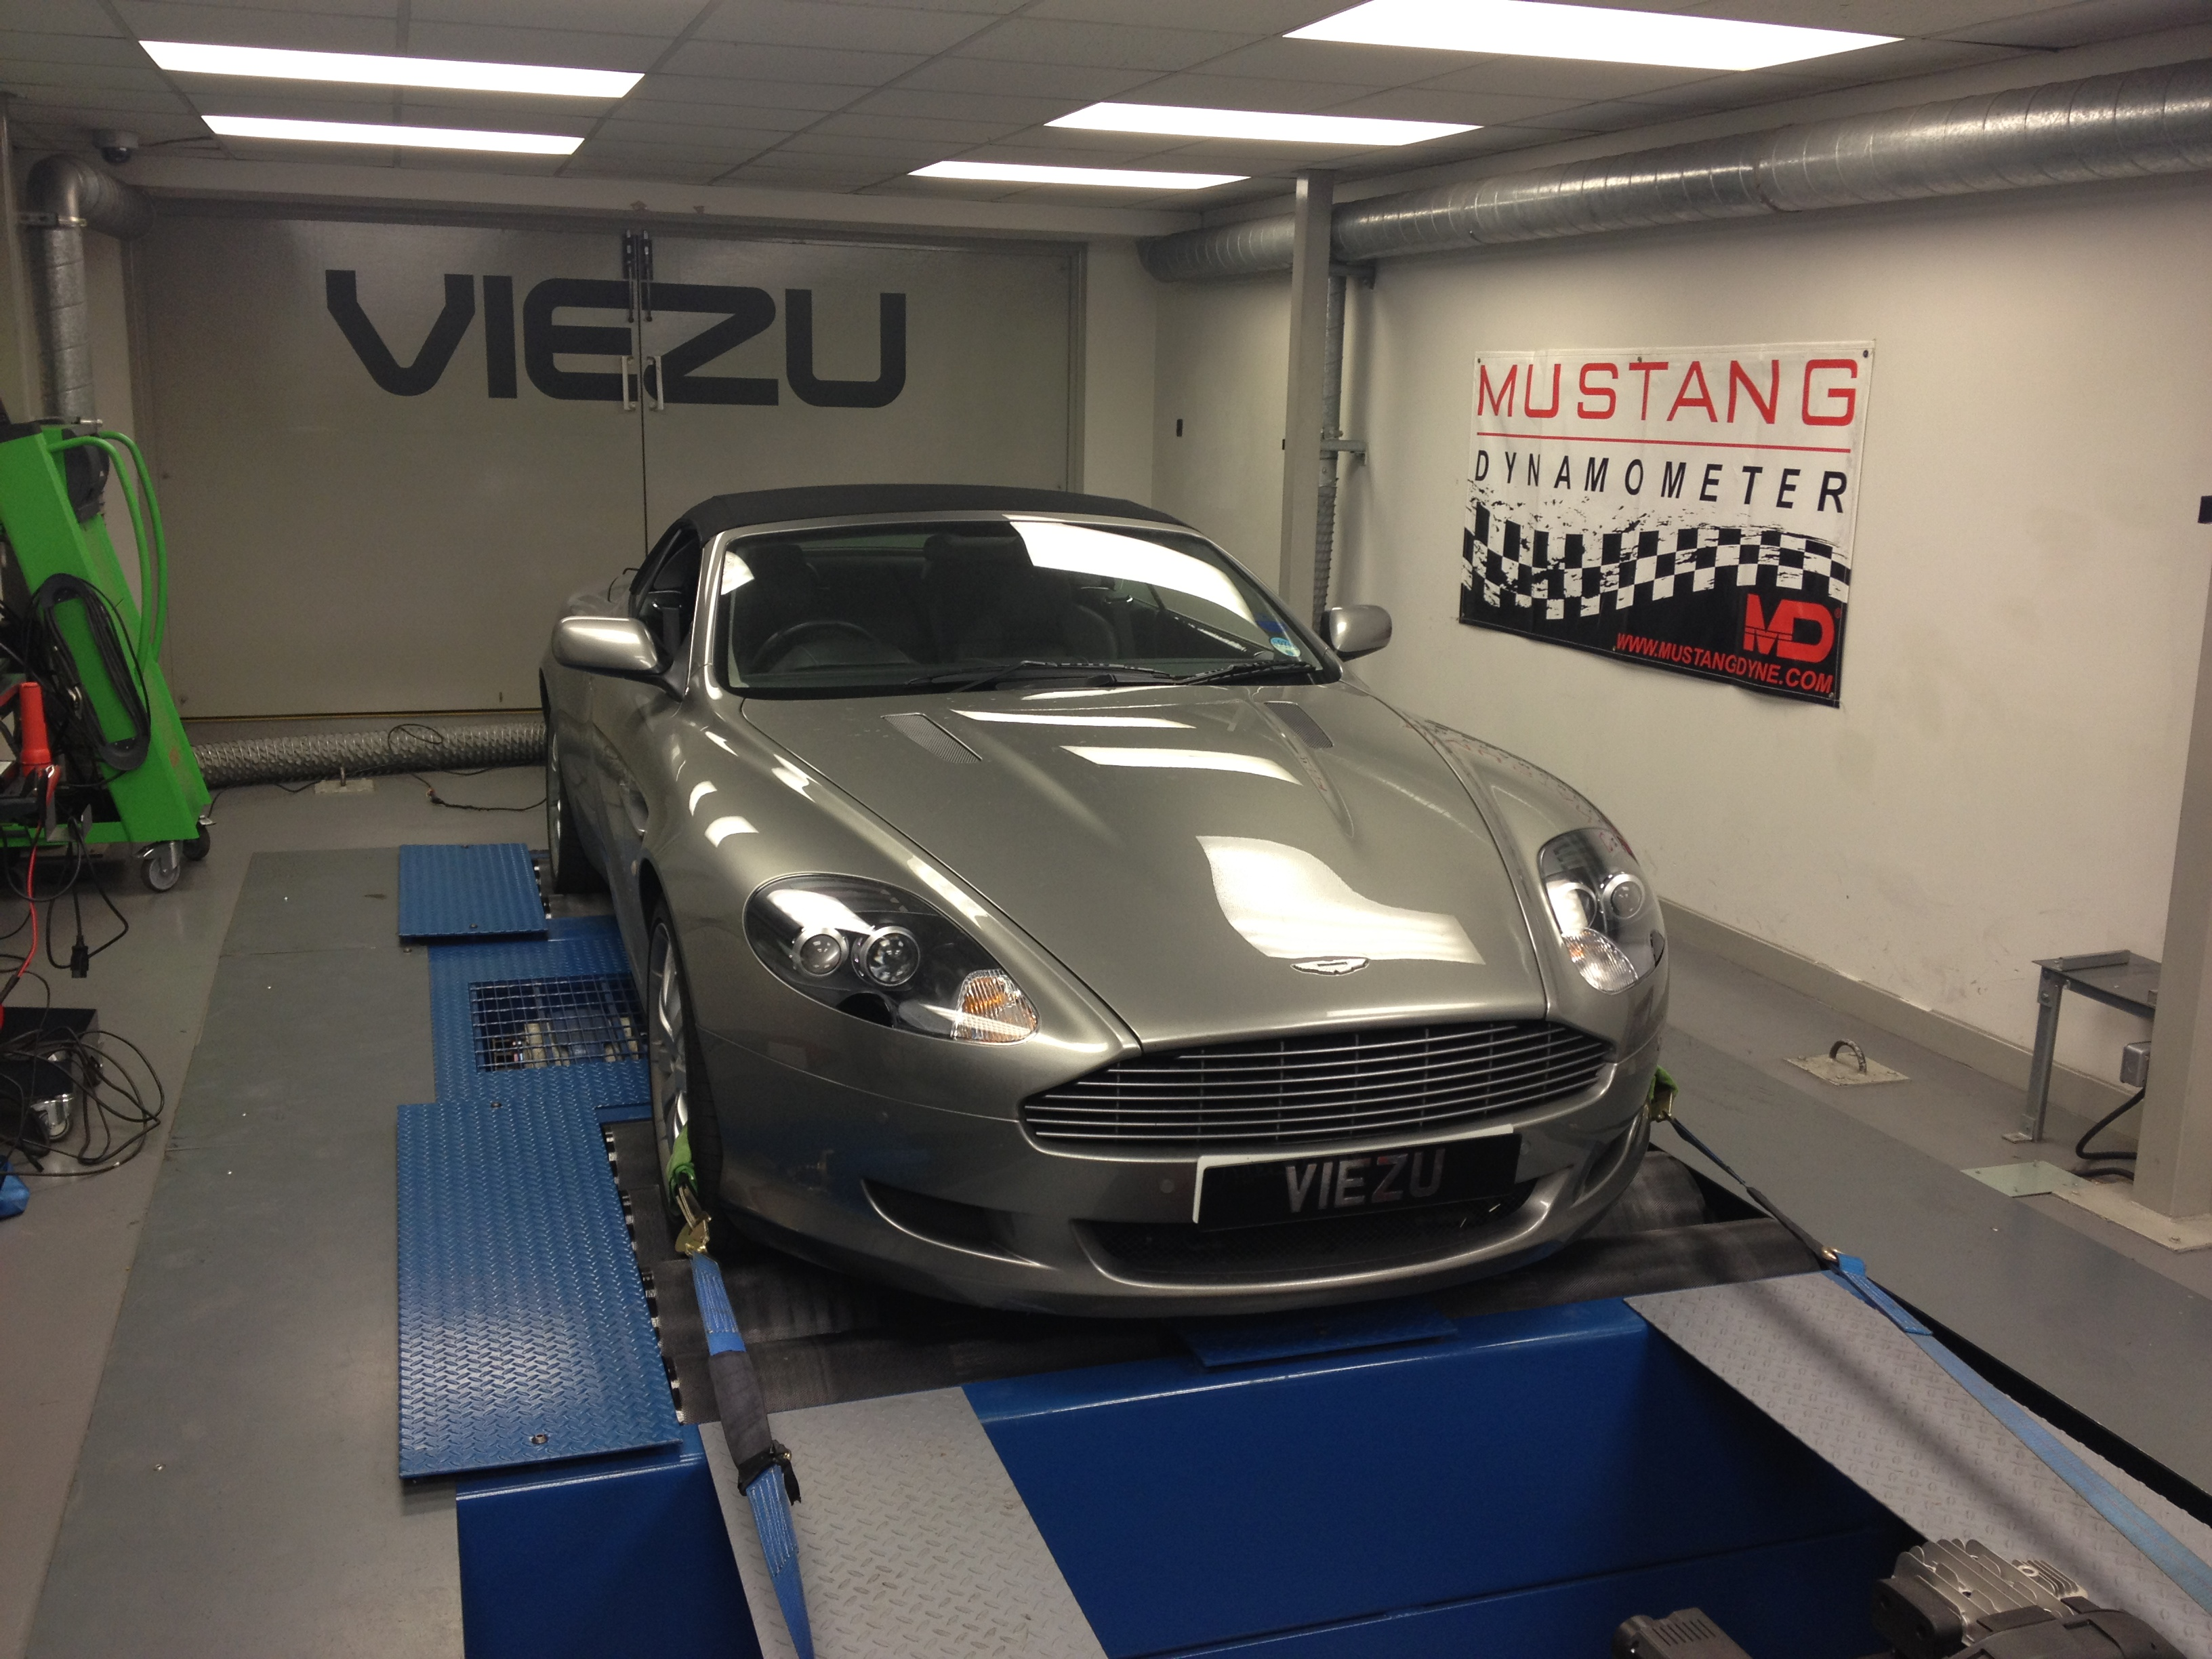 DB9 tunign now avaialble at Viezu